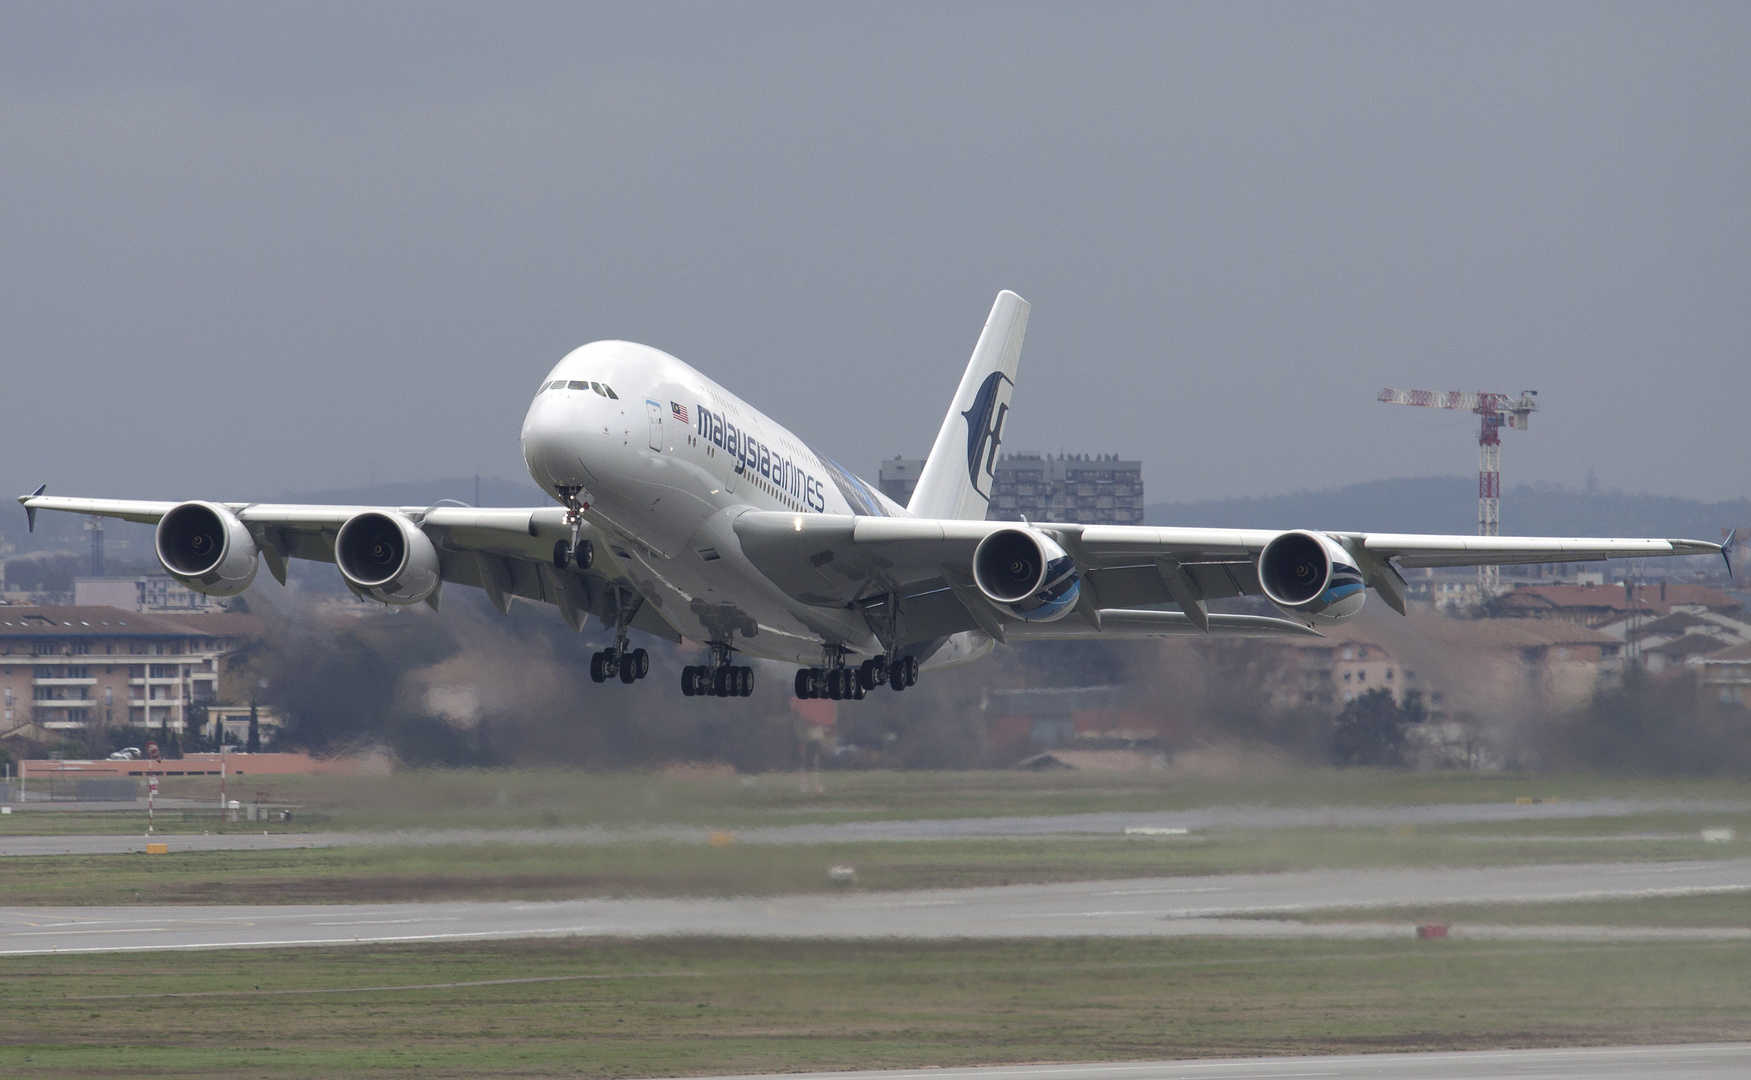 Malaysia Airlines A380 during Take off at Toulouse/Blagnac